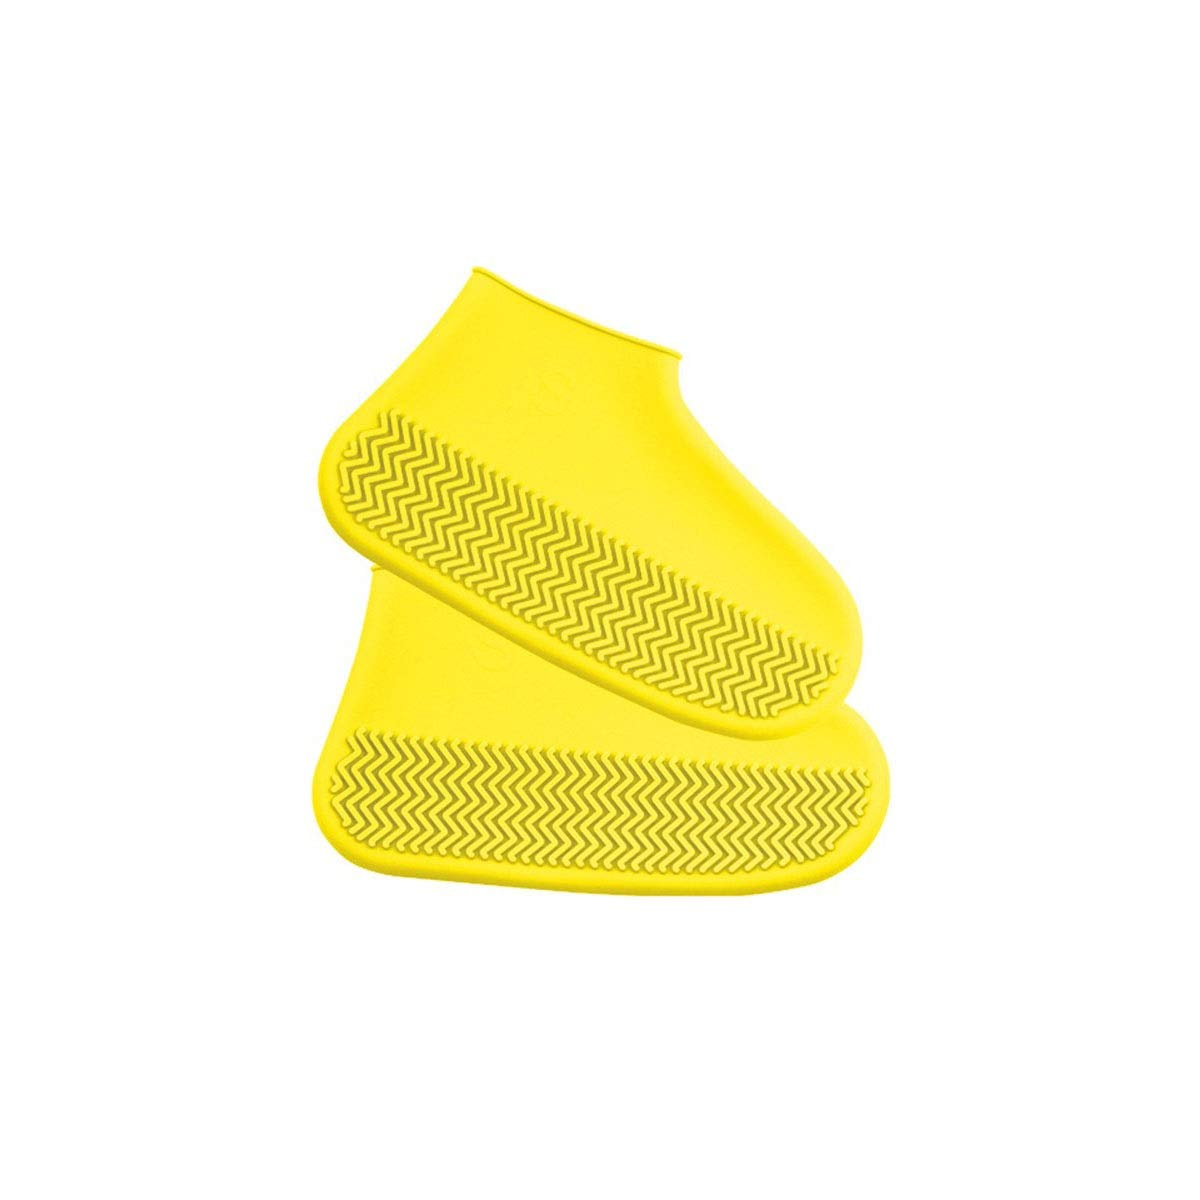 WUHUIZHENJINGXIAOBU Silicone Shoe Cover, Waterproof Rainy Day Thick Non-Slip wear-Resistant rain Boots, Men and Women Outdoor Rubber Latex into Shoe Covers That can be Worn on Rainy Days, by WUHUIZHENJINGXIAOBU